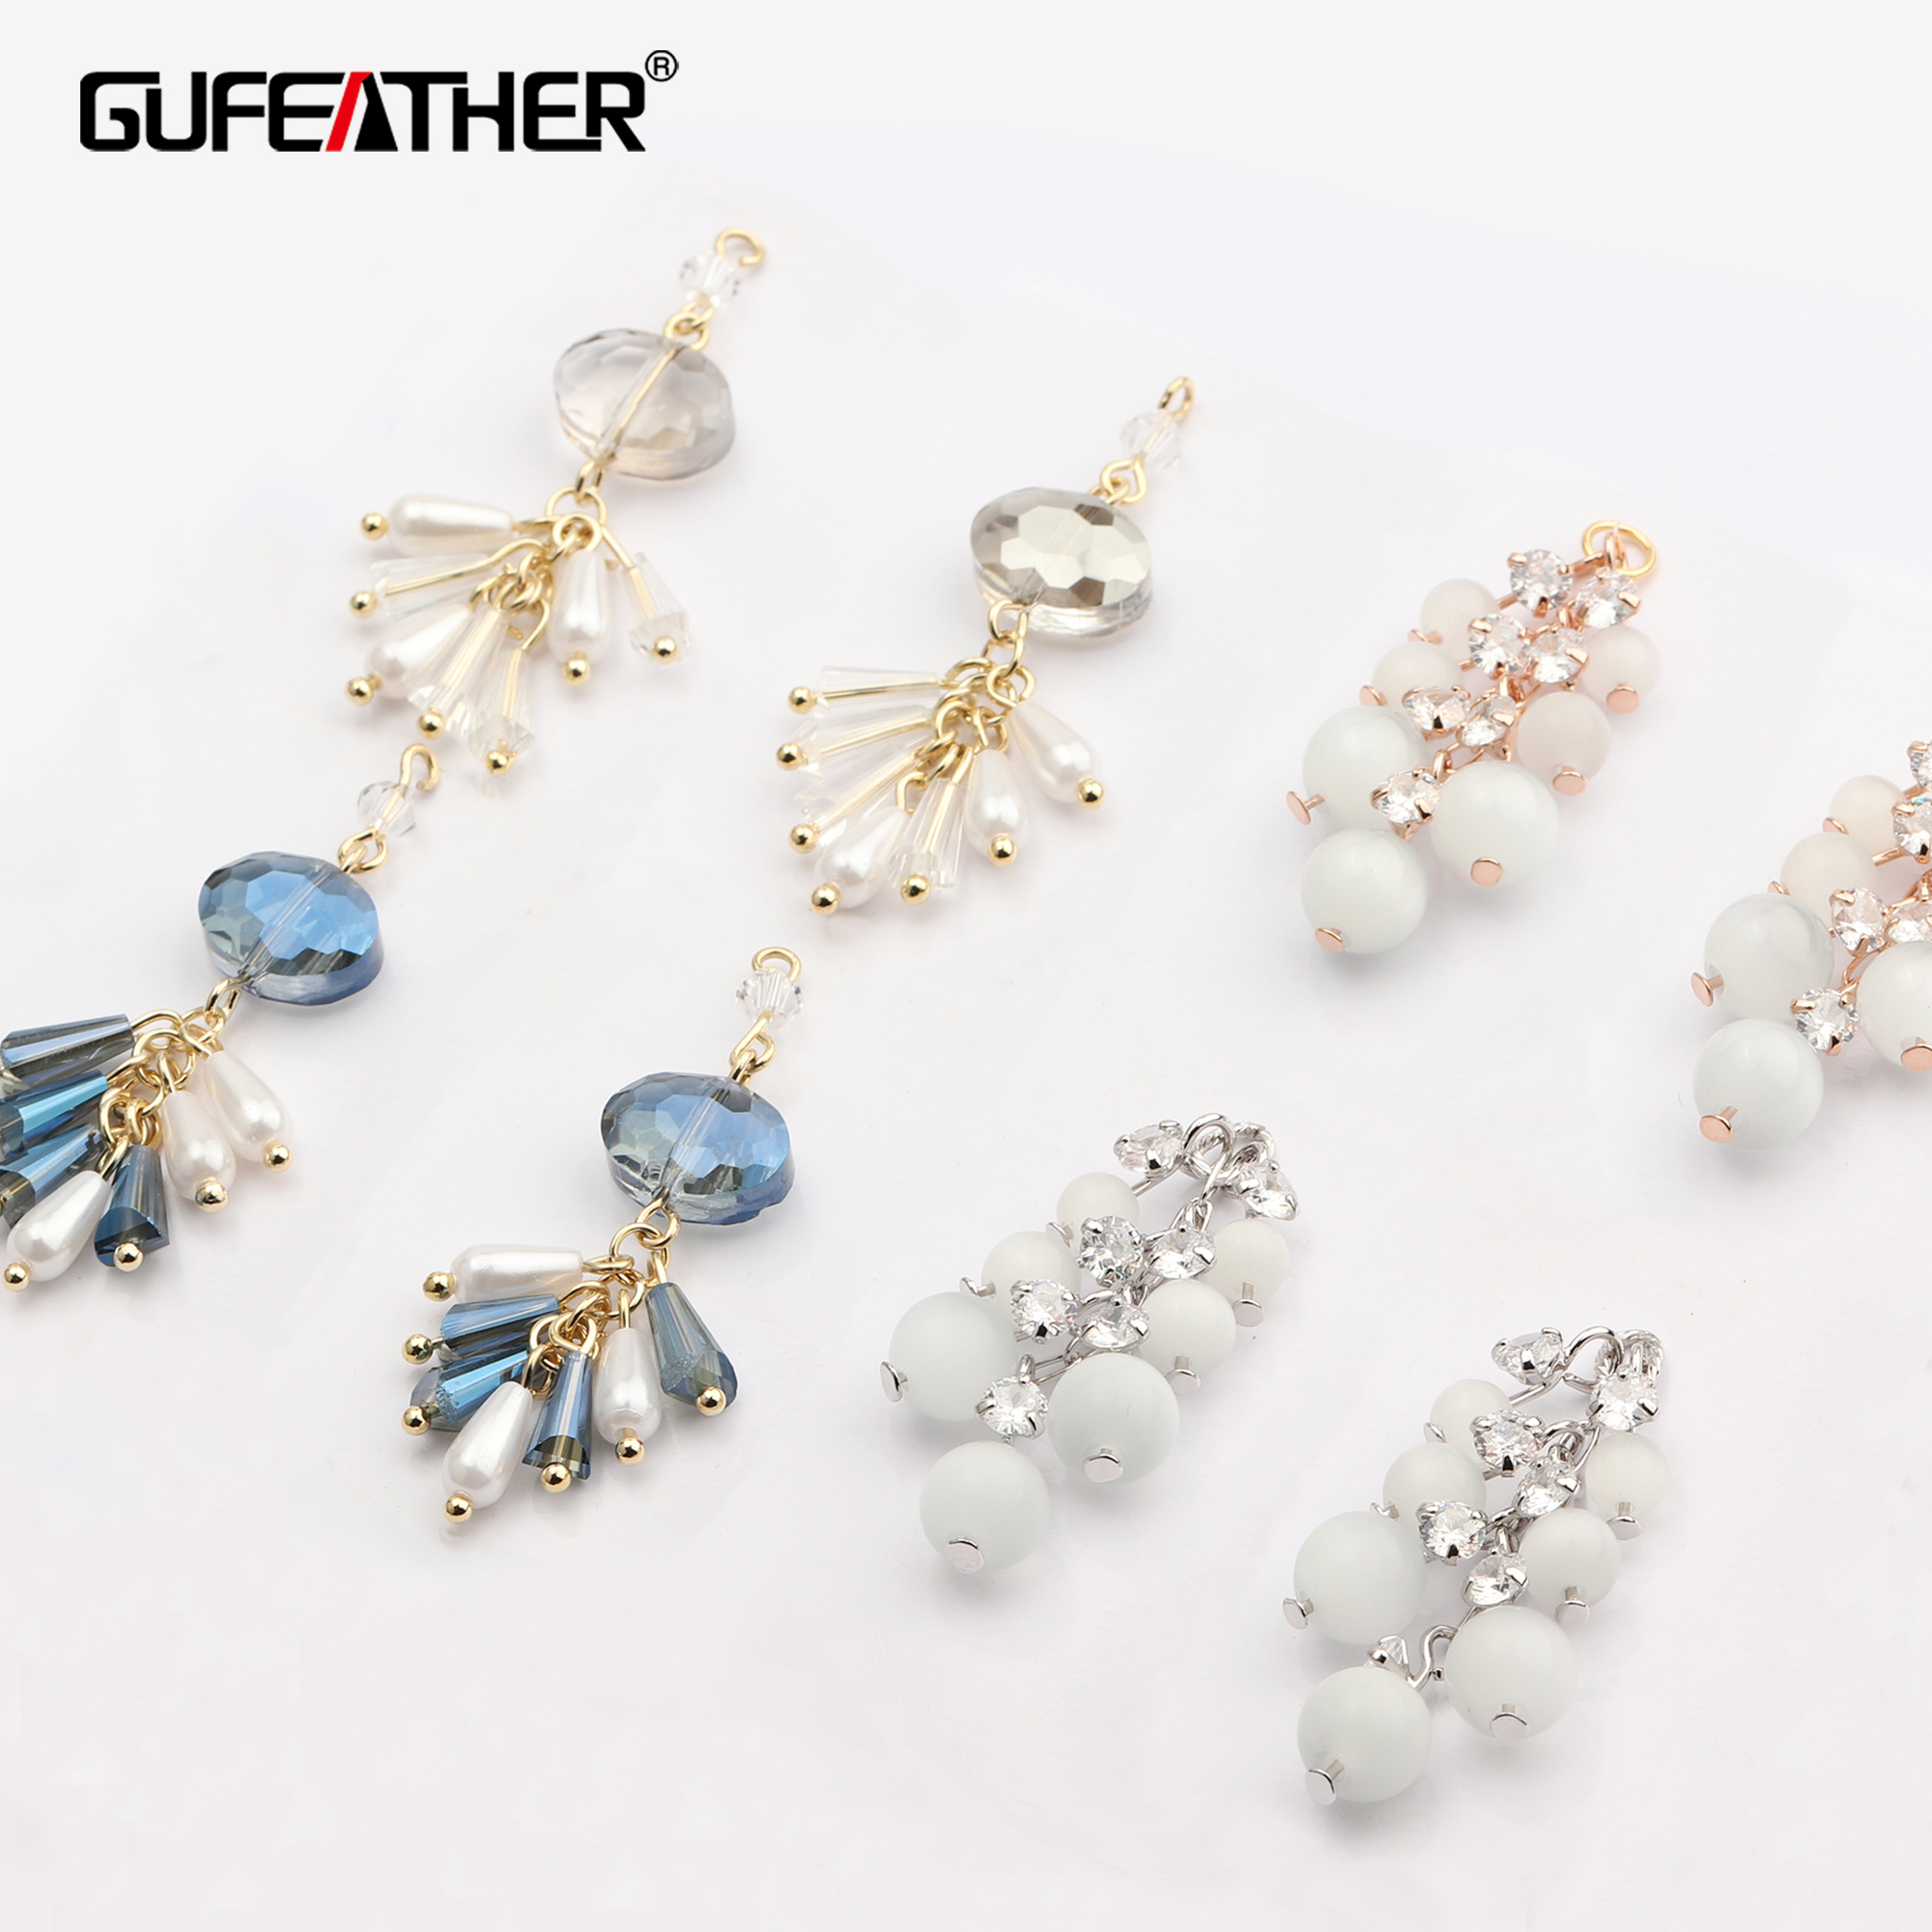 GUFEATHER M633,jewelry Making,ear Chain,diy Beads Pendant,stable Quality,jewelry Findings,hand Made,diy Earrings,4pcs/lot